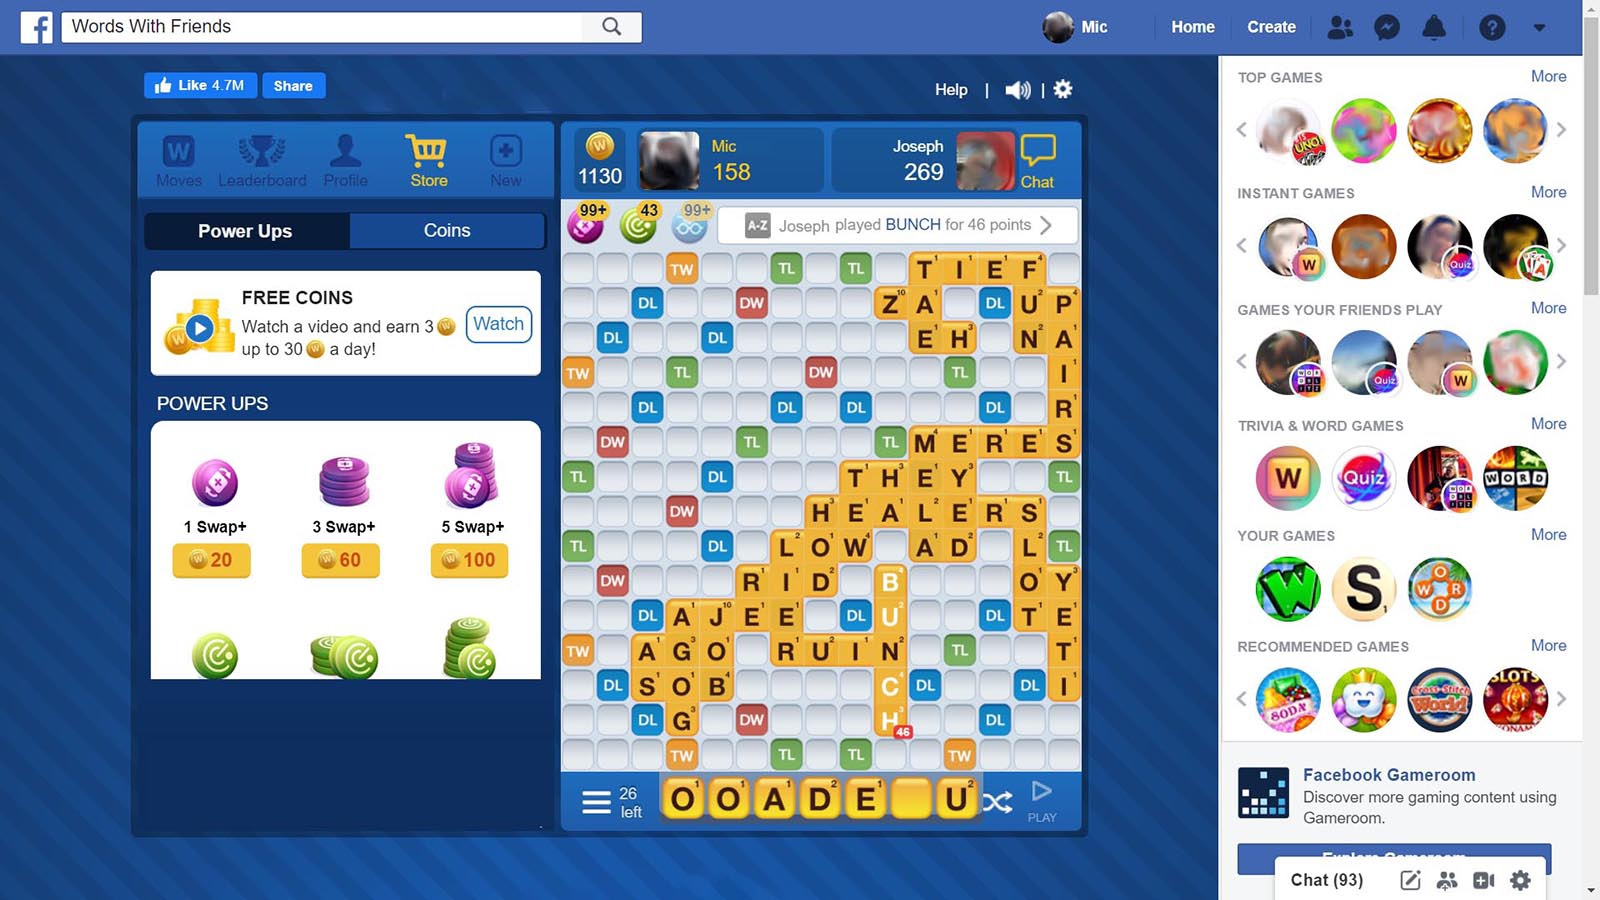 Screenshot of Words With Friends on Facebook